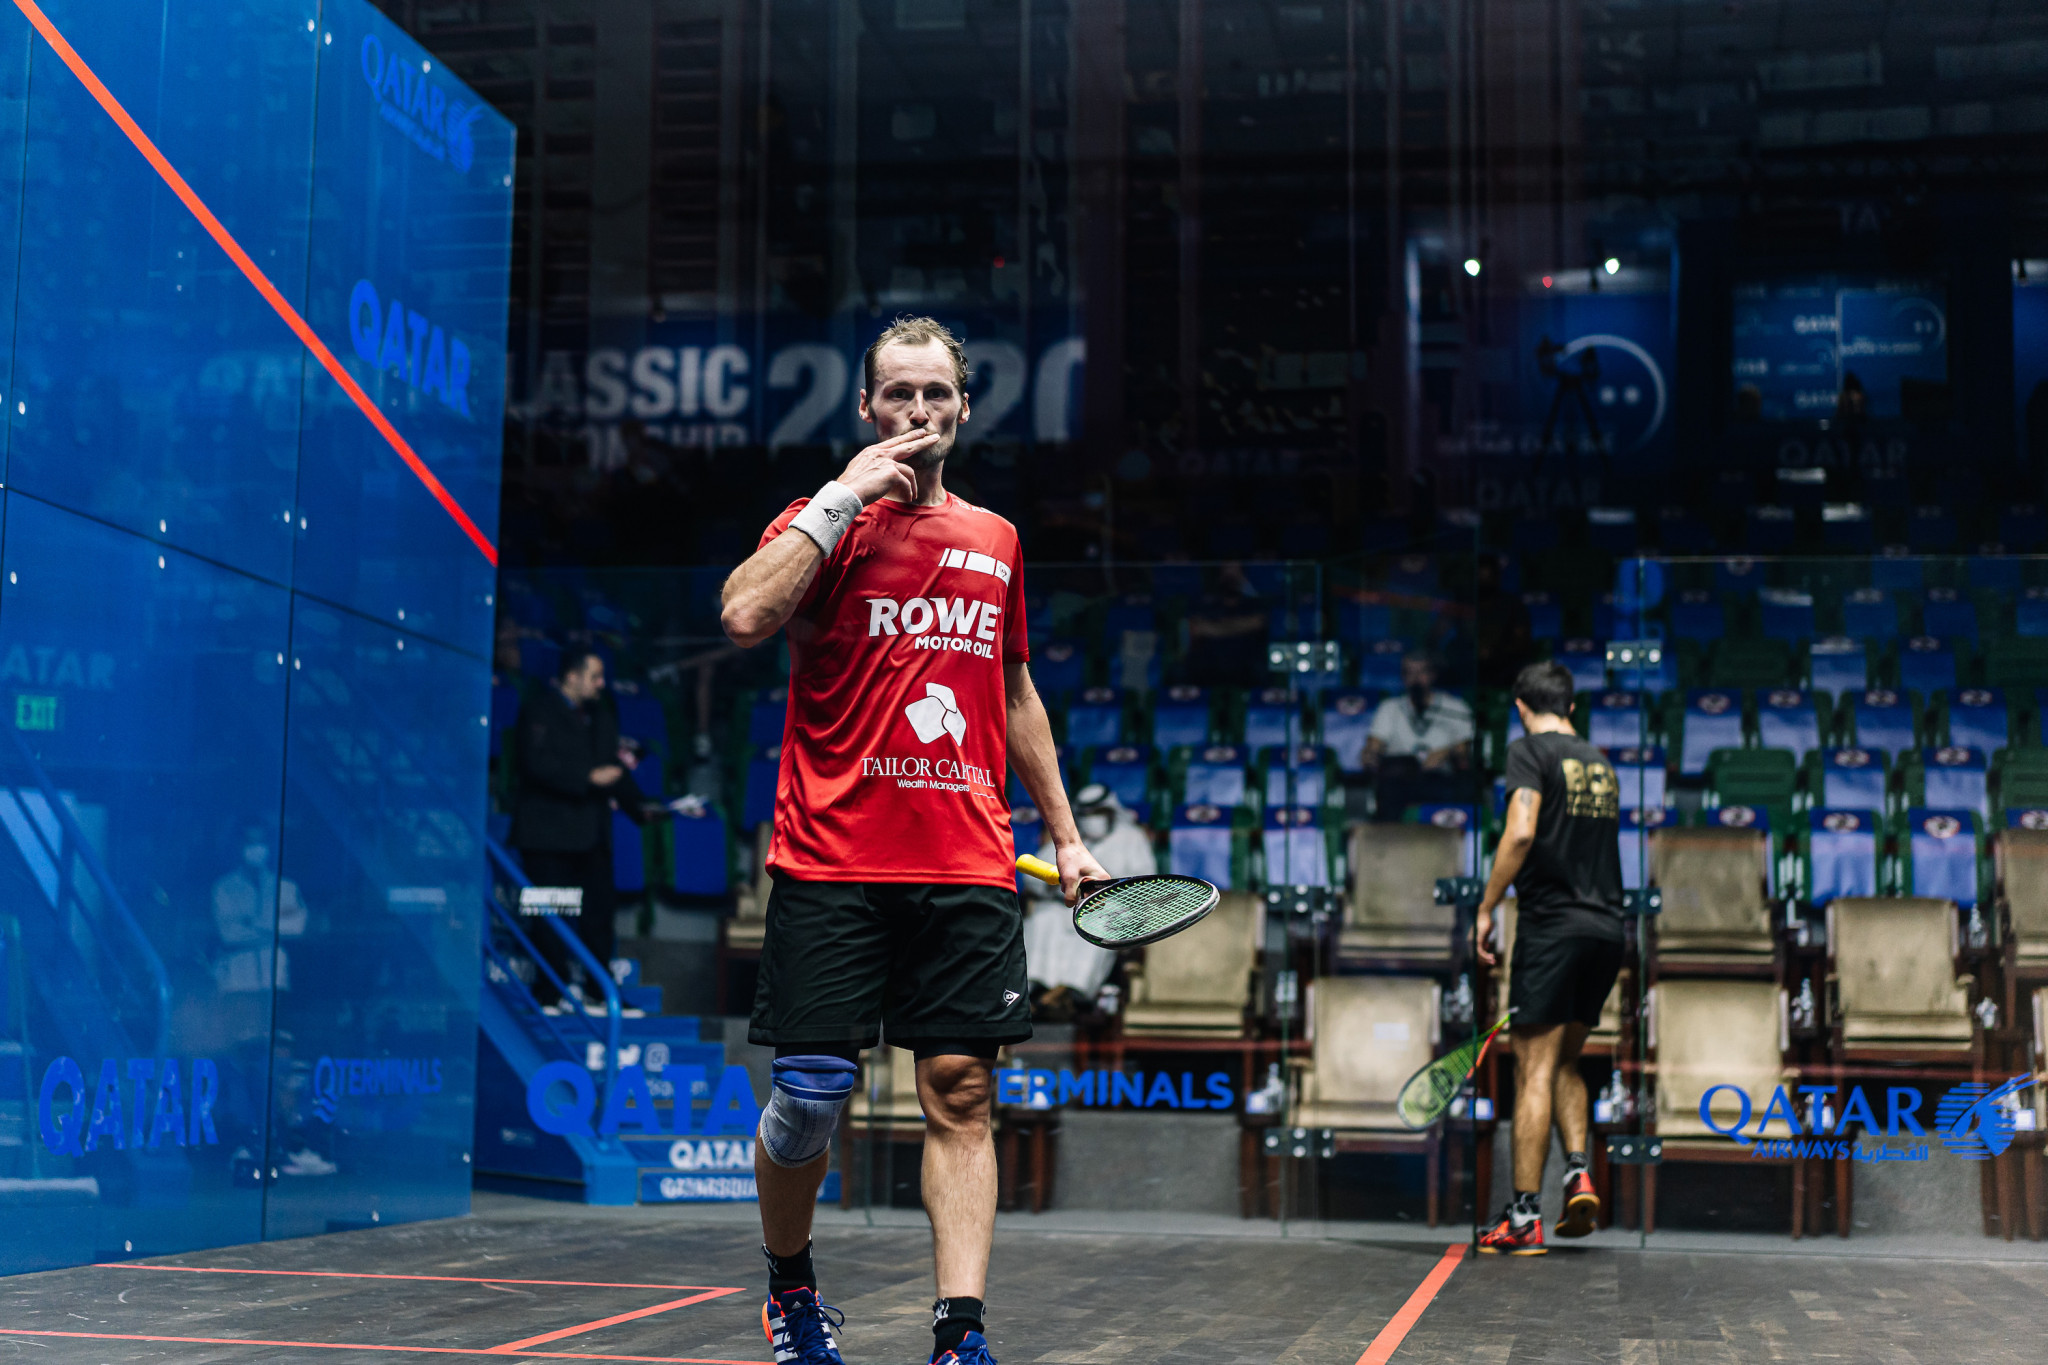 Former world number one Gregory Gaultier booked his place in the second round with victory over Spain's Iker Pejares ©PSA